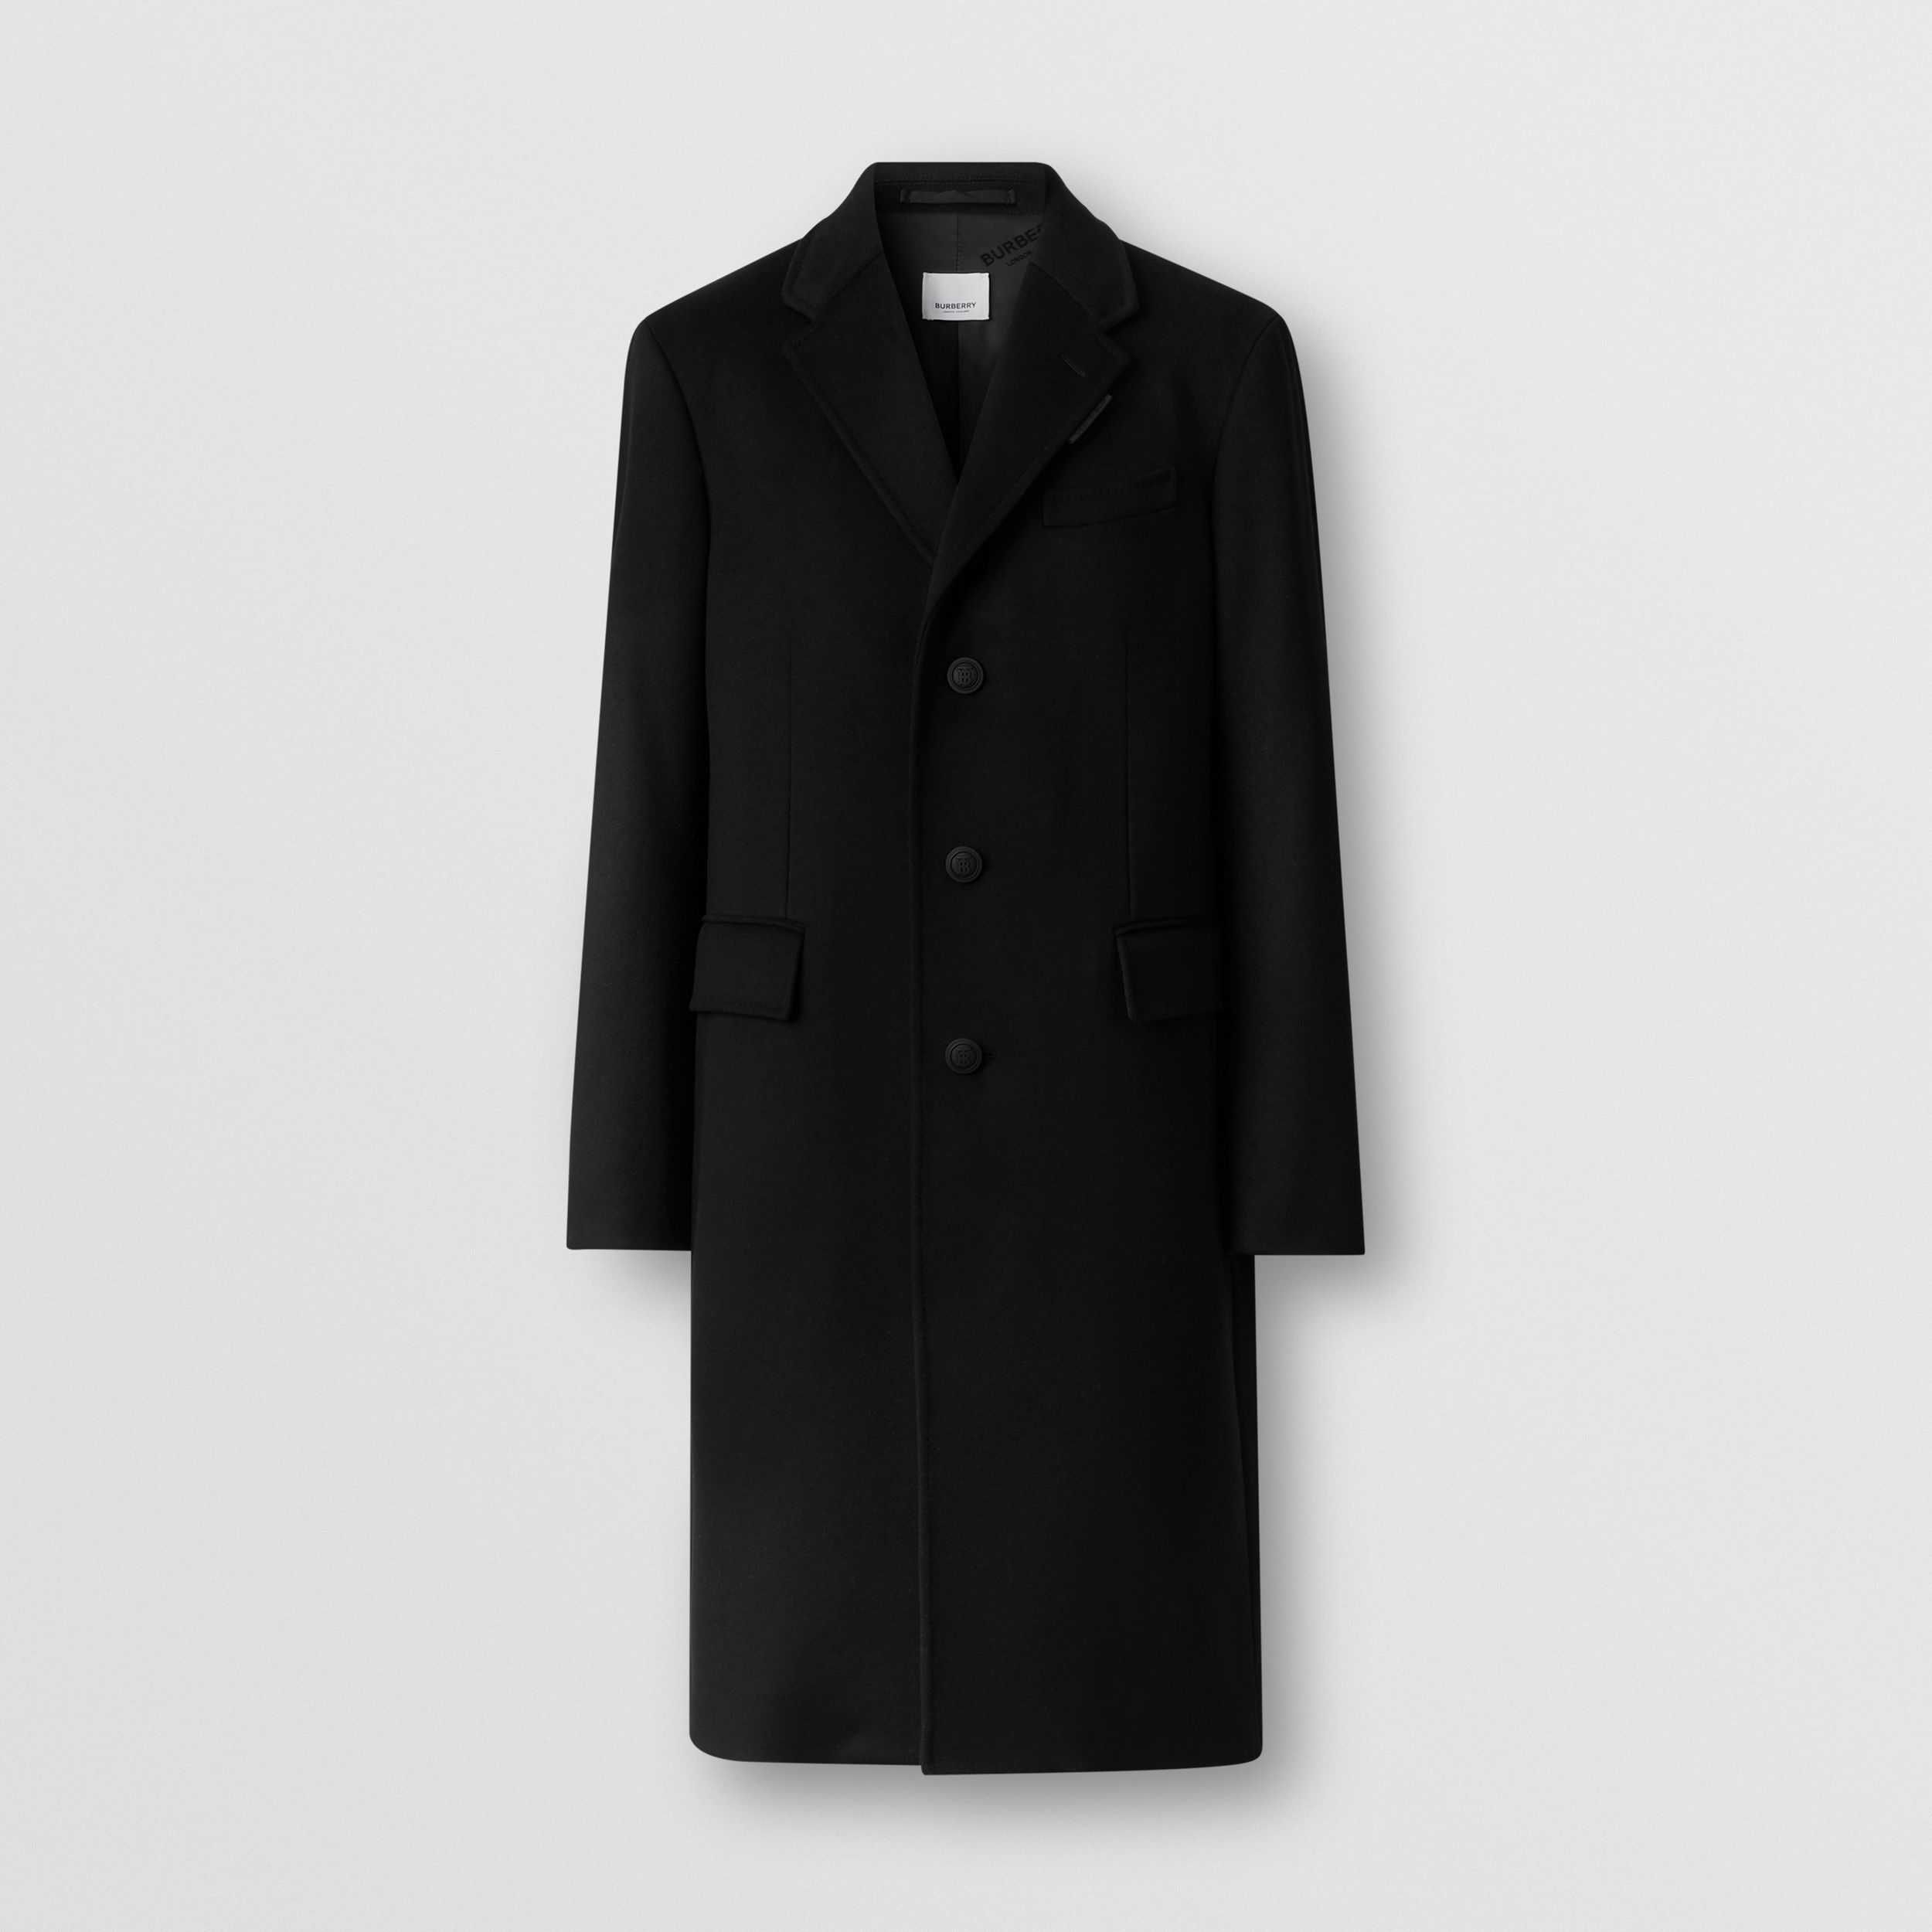 Button Detail Wool Cashmere Tailored Coat in Black - Men | Burberry Canada - 4